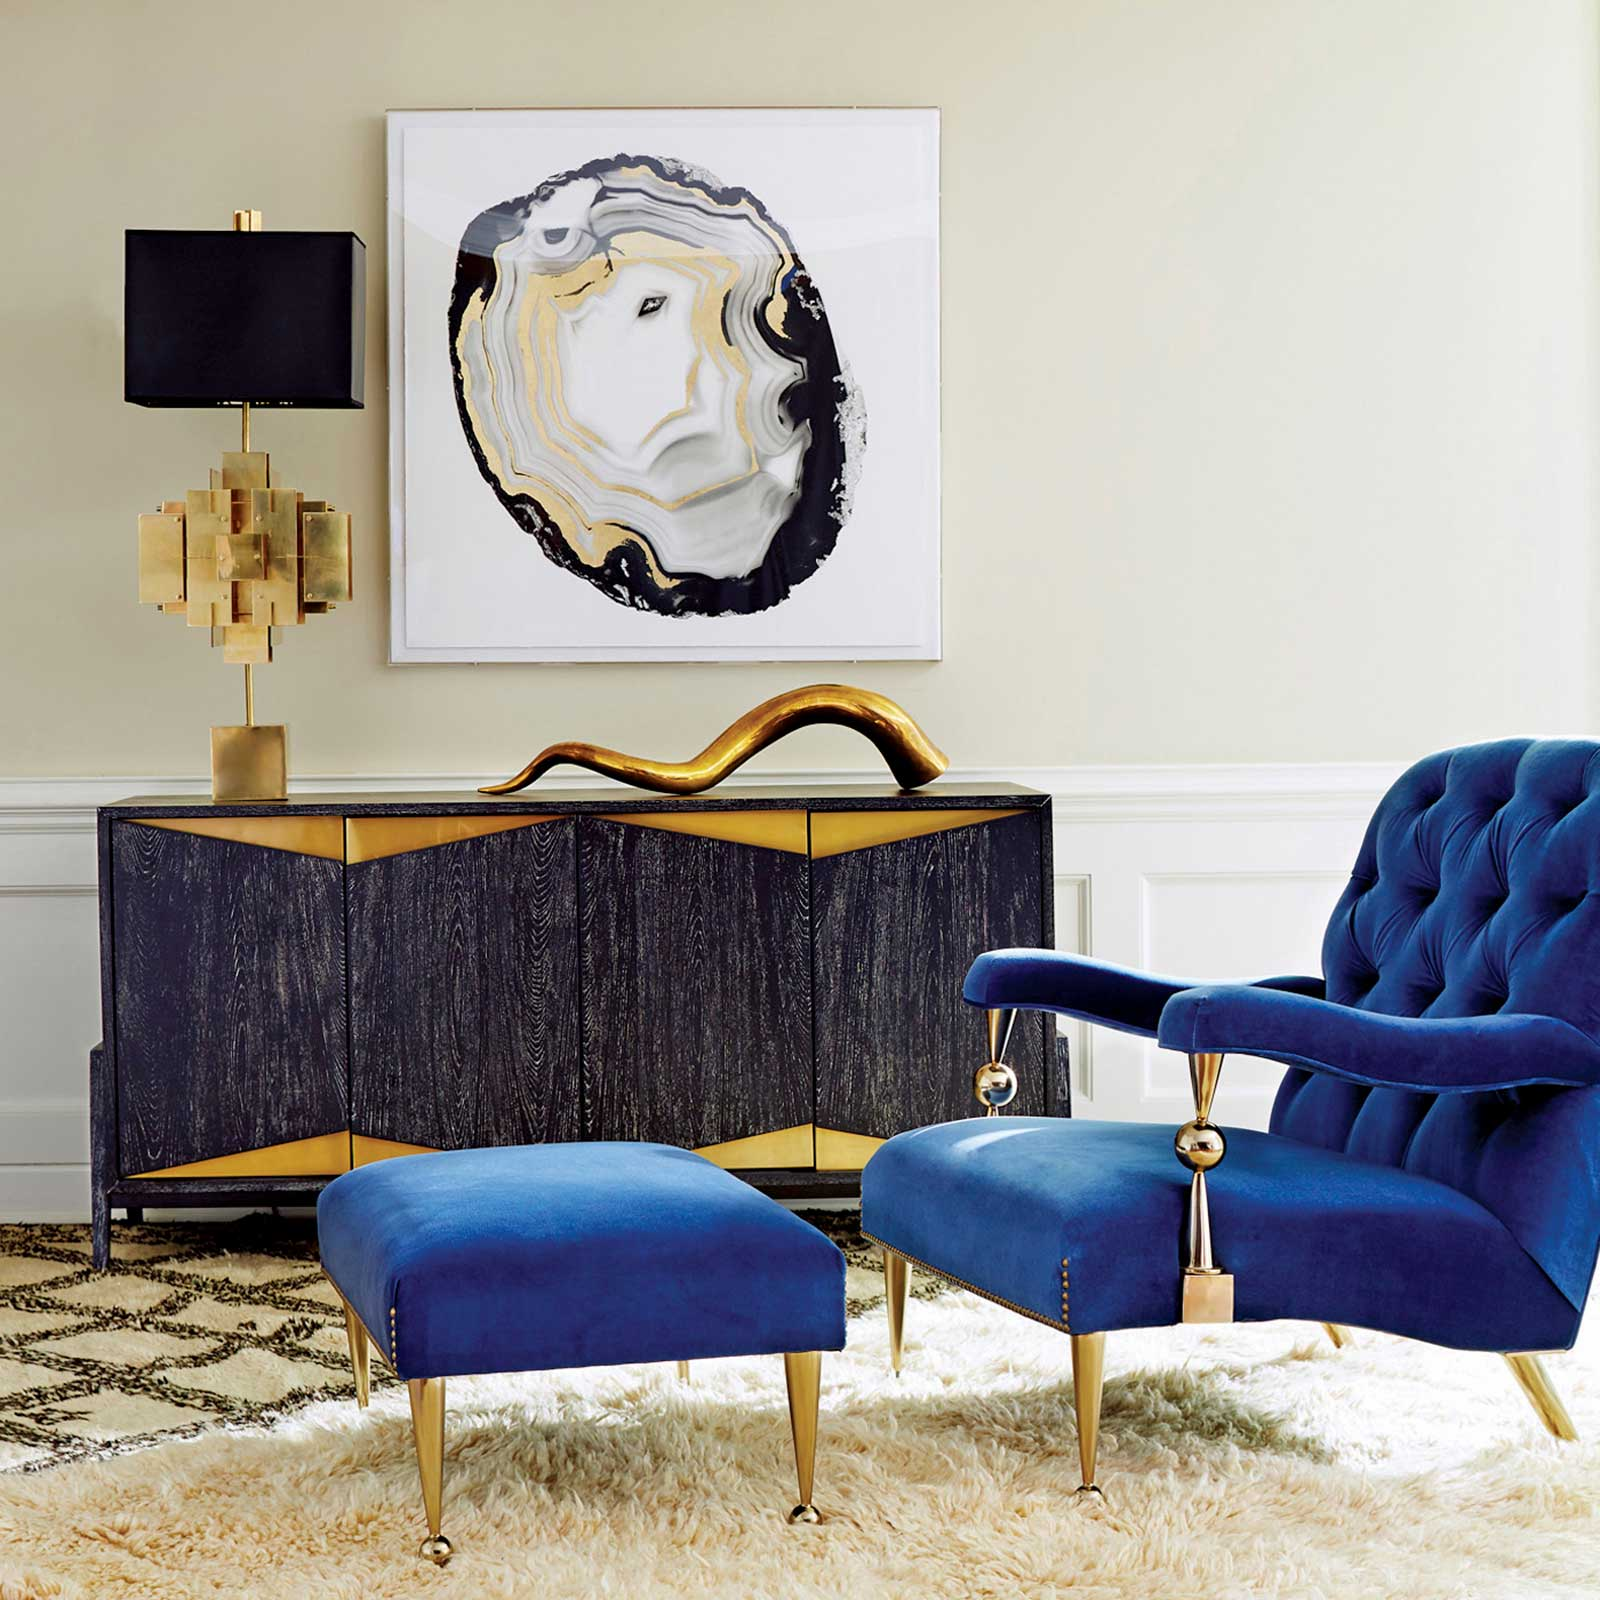 stunning cabinets stunning cabinets 10 stunning cabinets for your dining room decor CaracasChair 01crop styled fall15 jonathan adler rgb